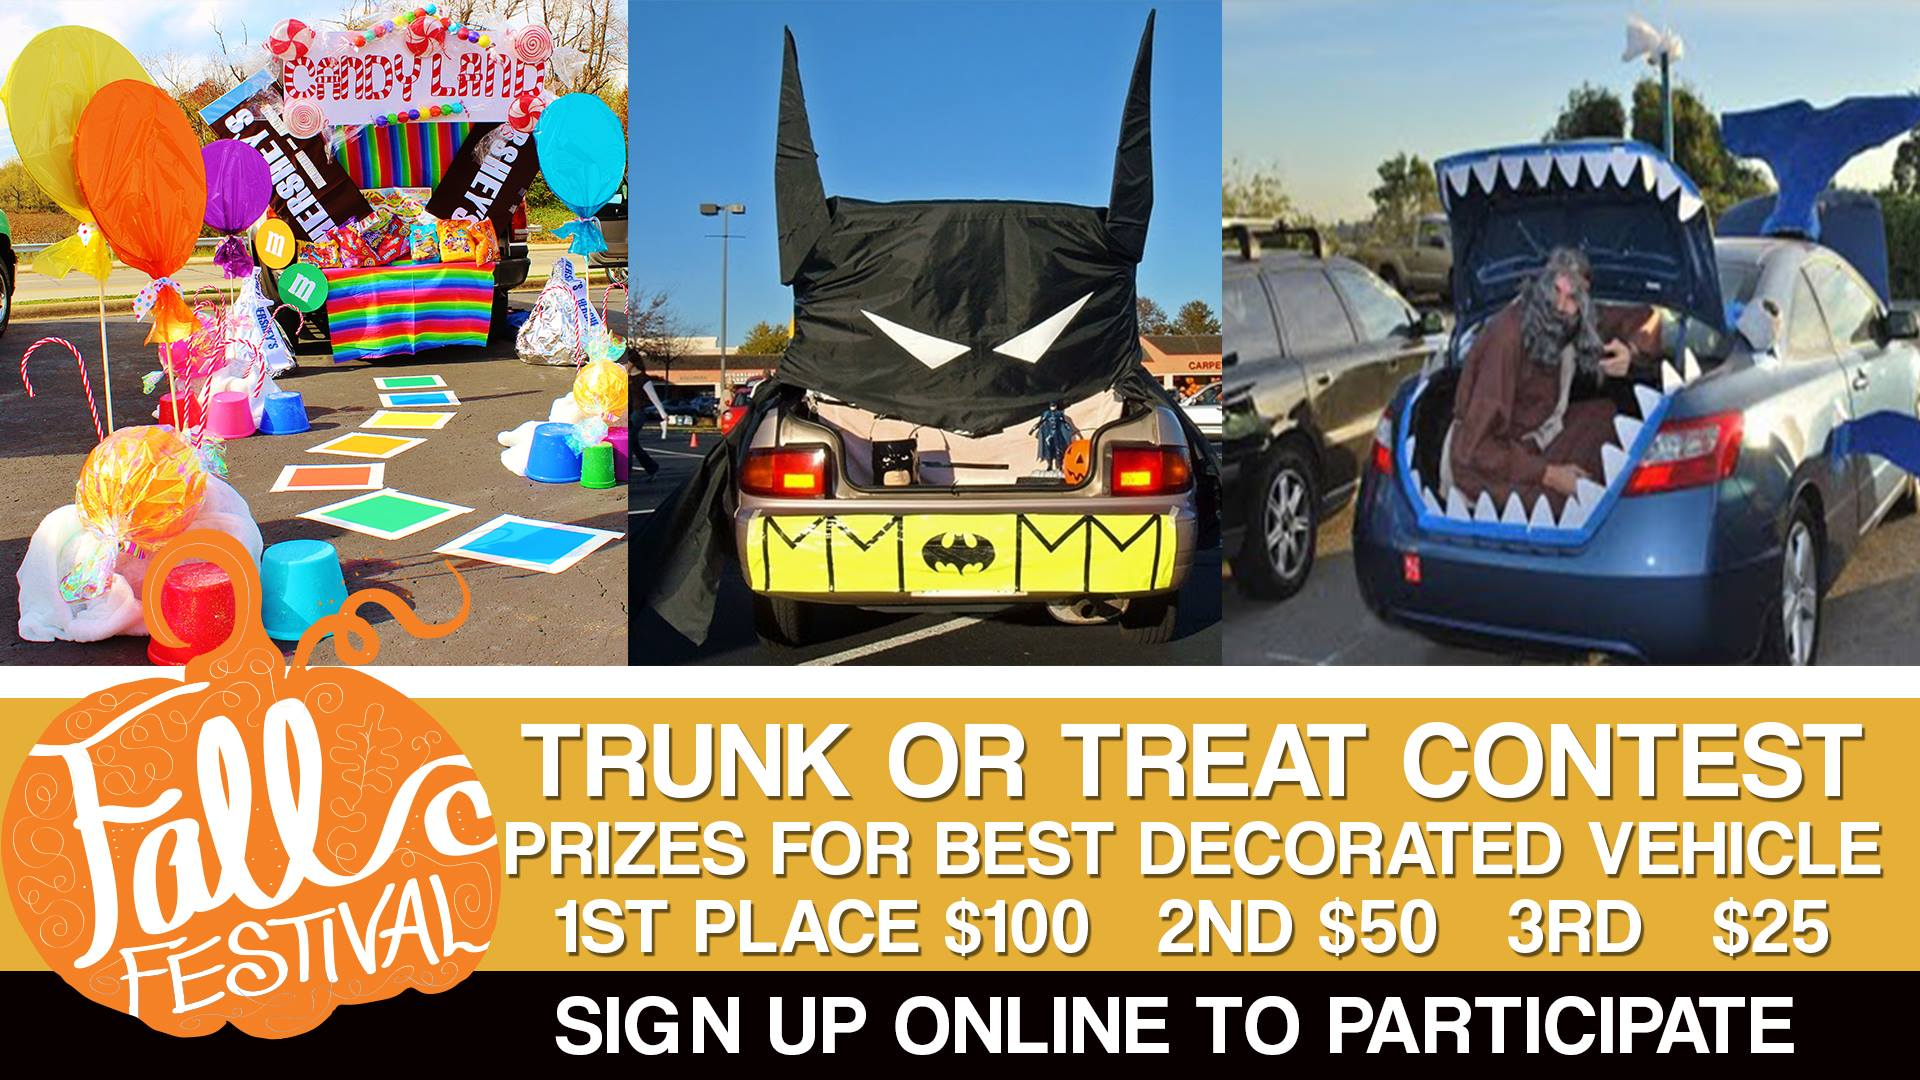 Fall festival trunk or treat contest